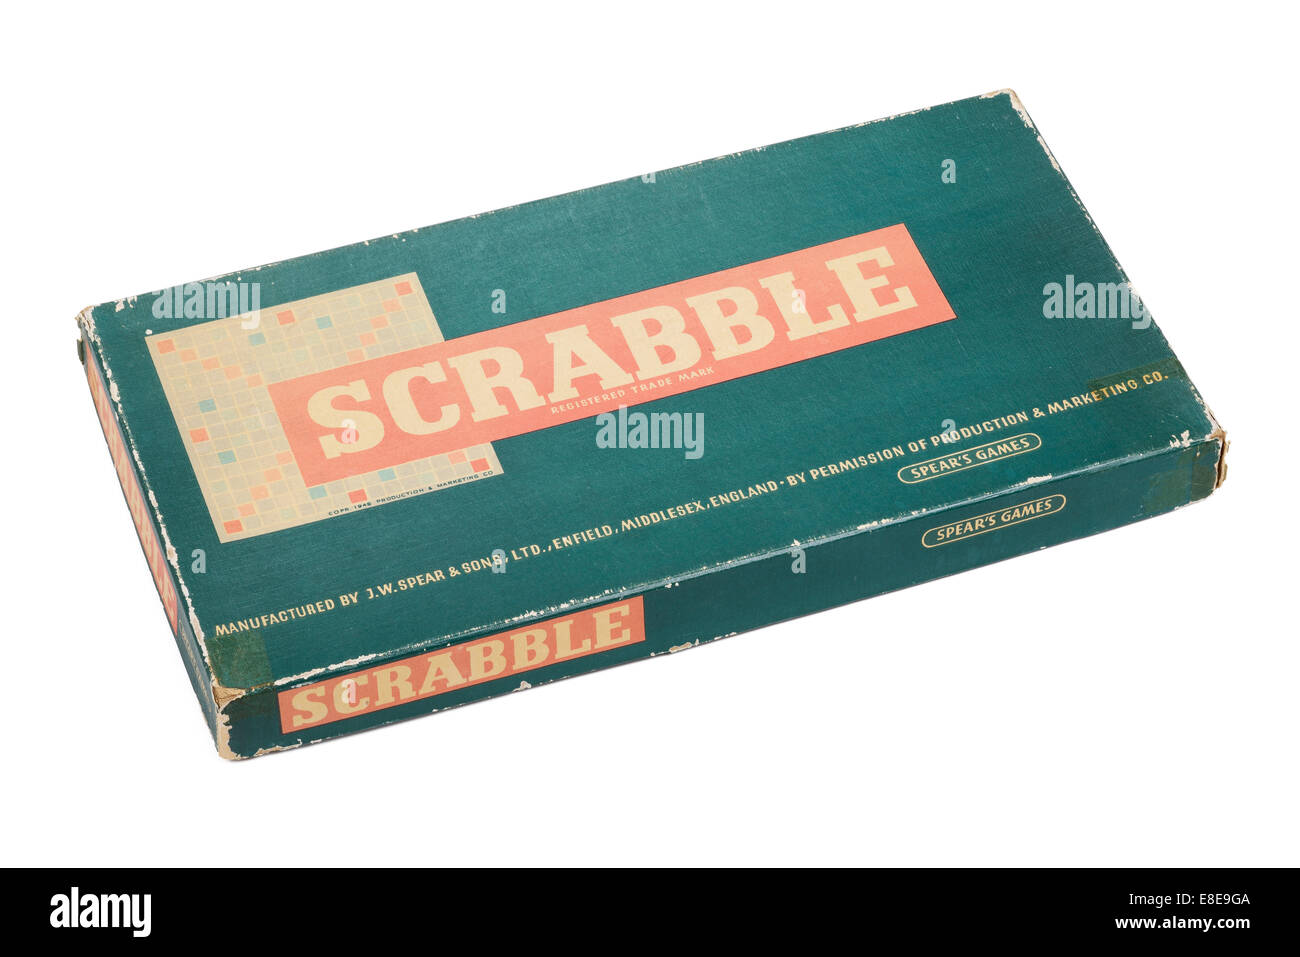 An original vintage game of Scrabble by Spears Games - Stock Image